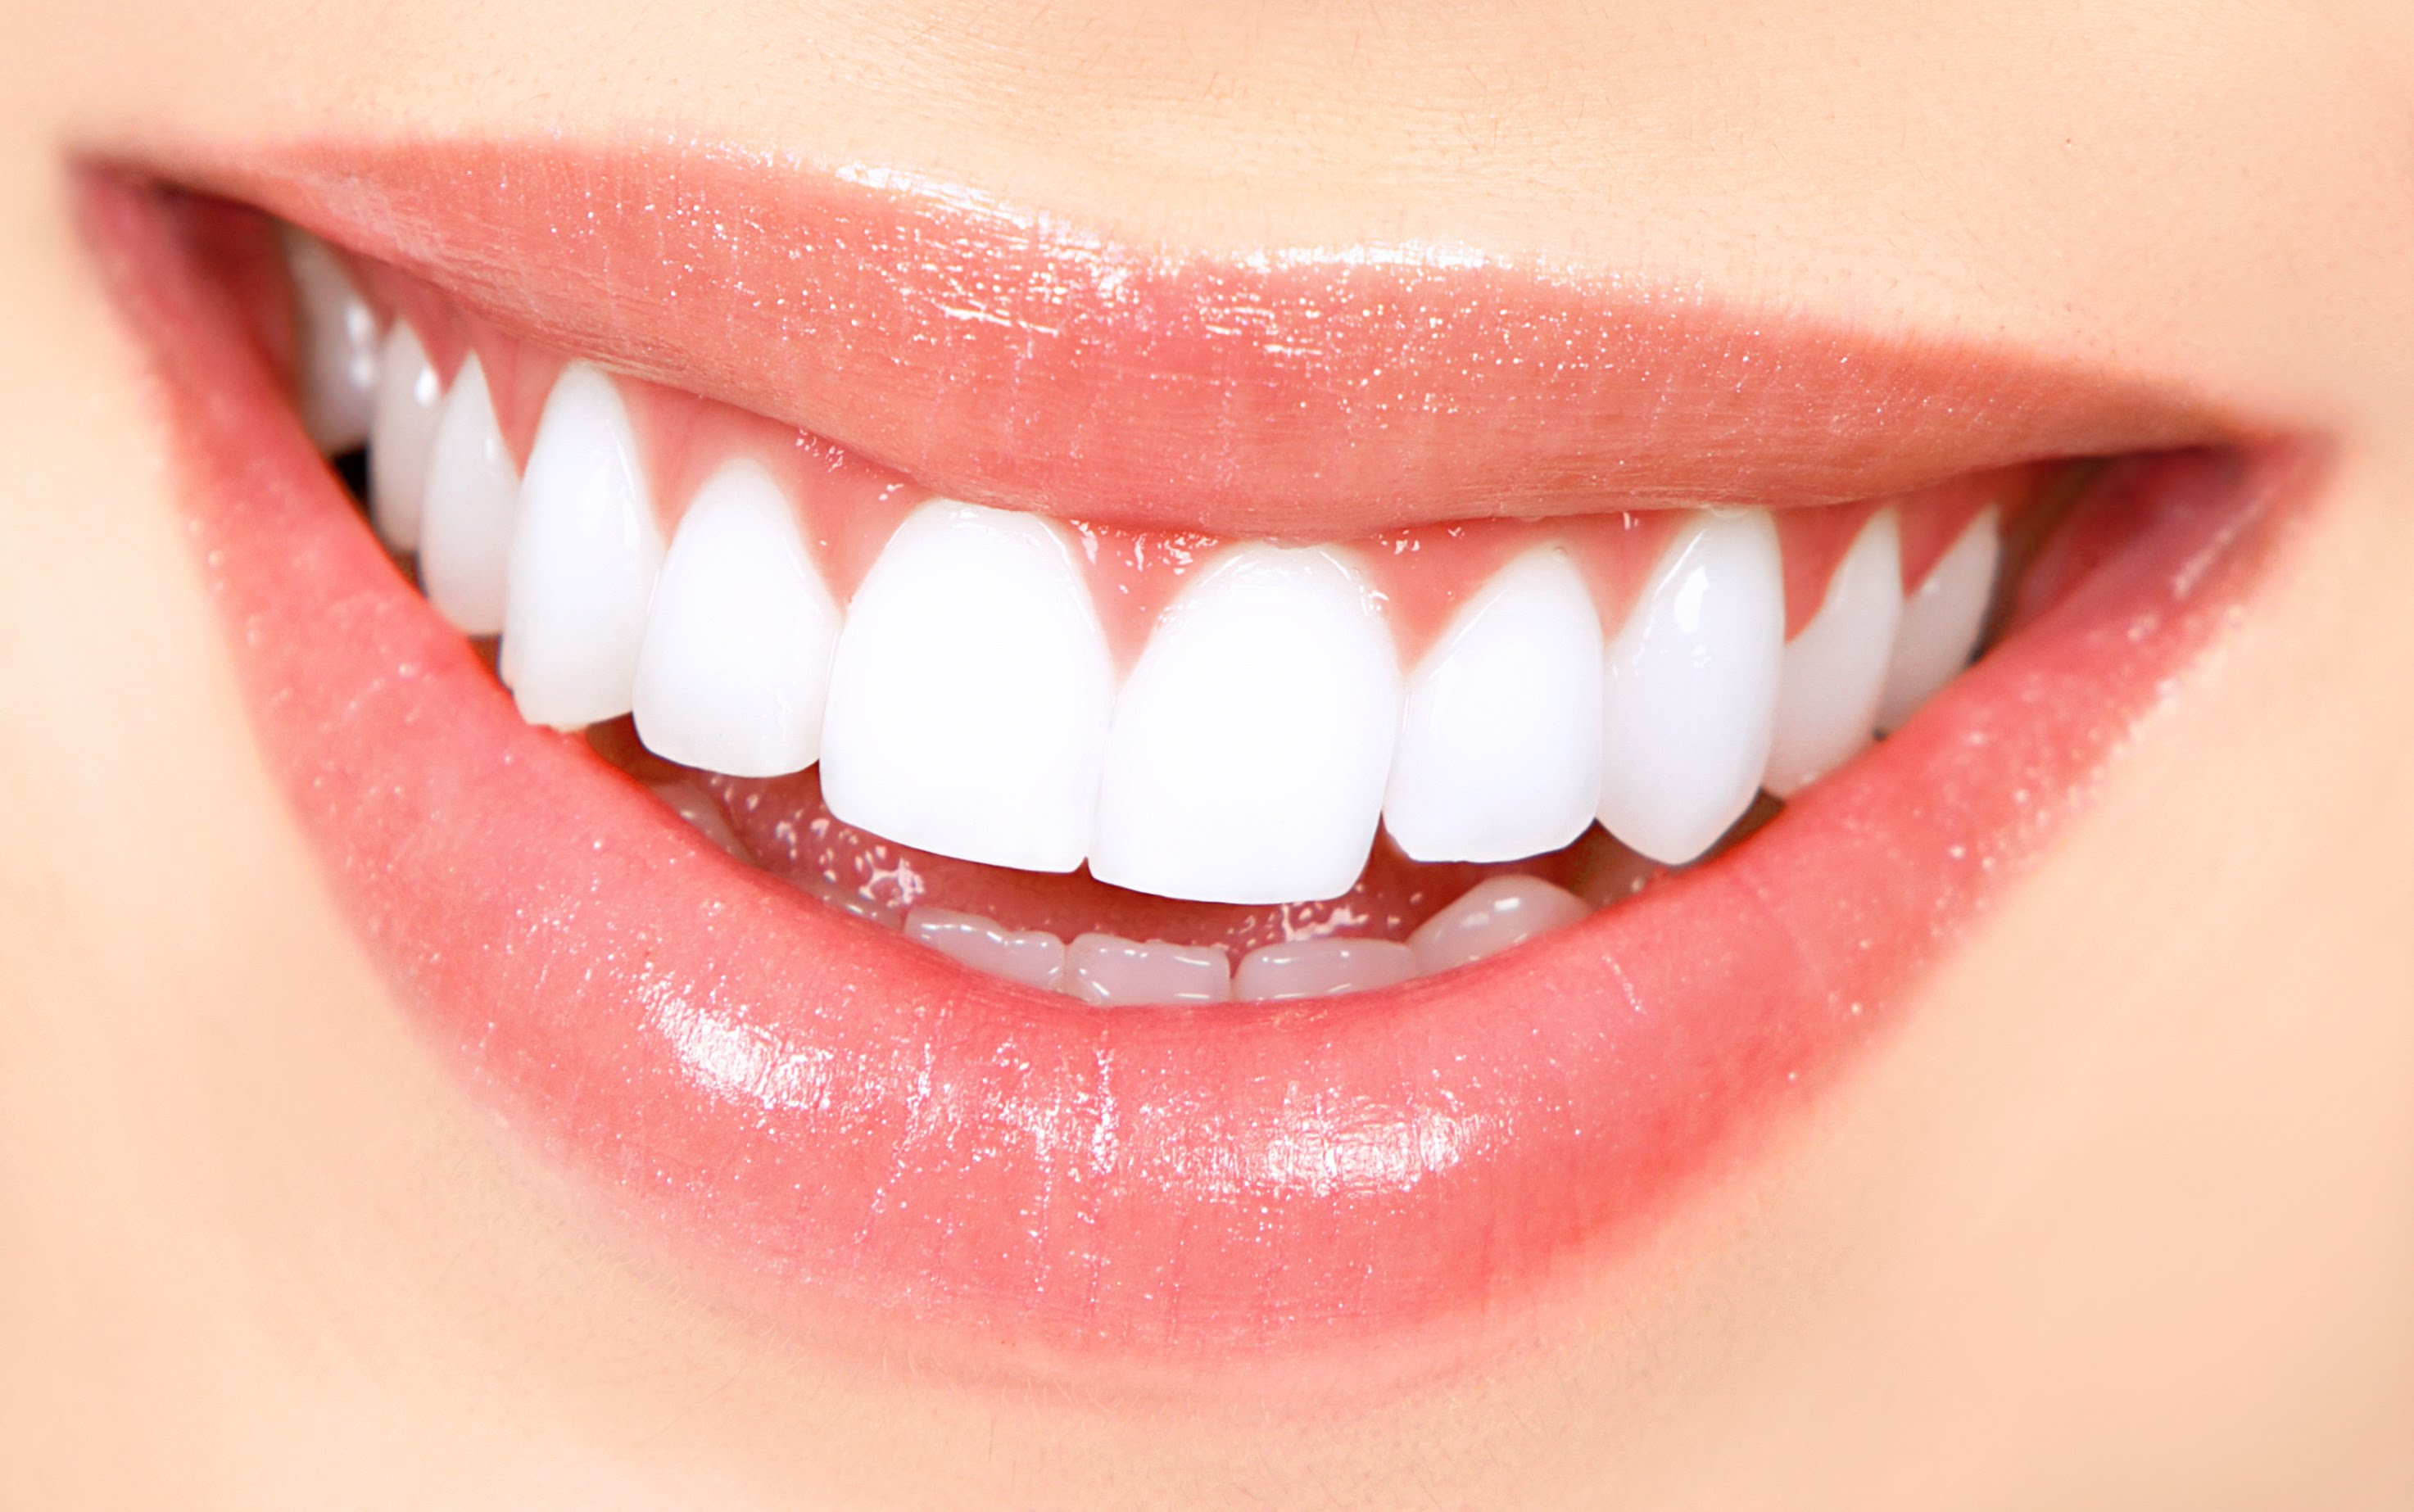 tooth decay 5 things you need to do before you lose your teeth